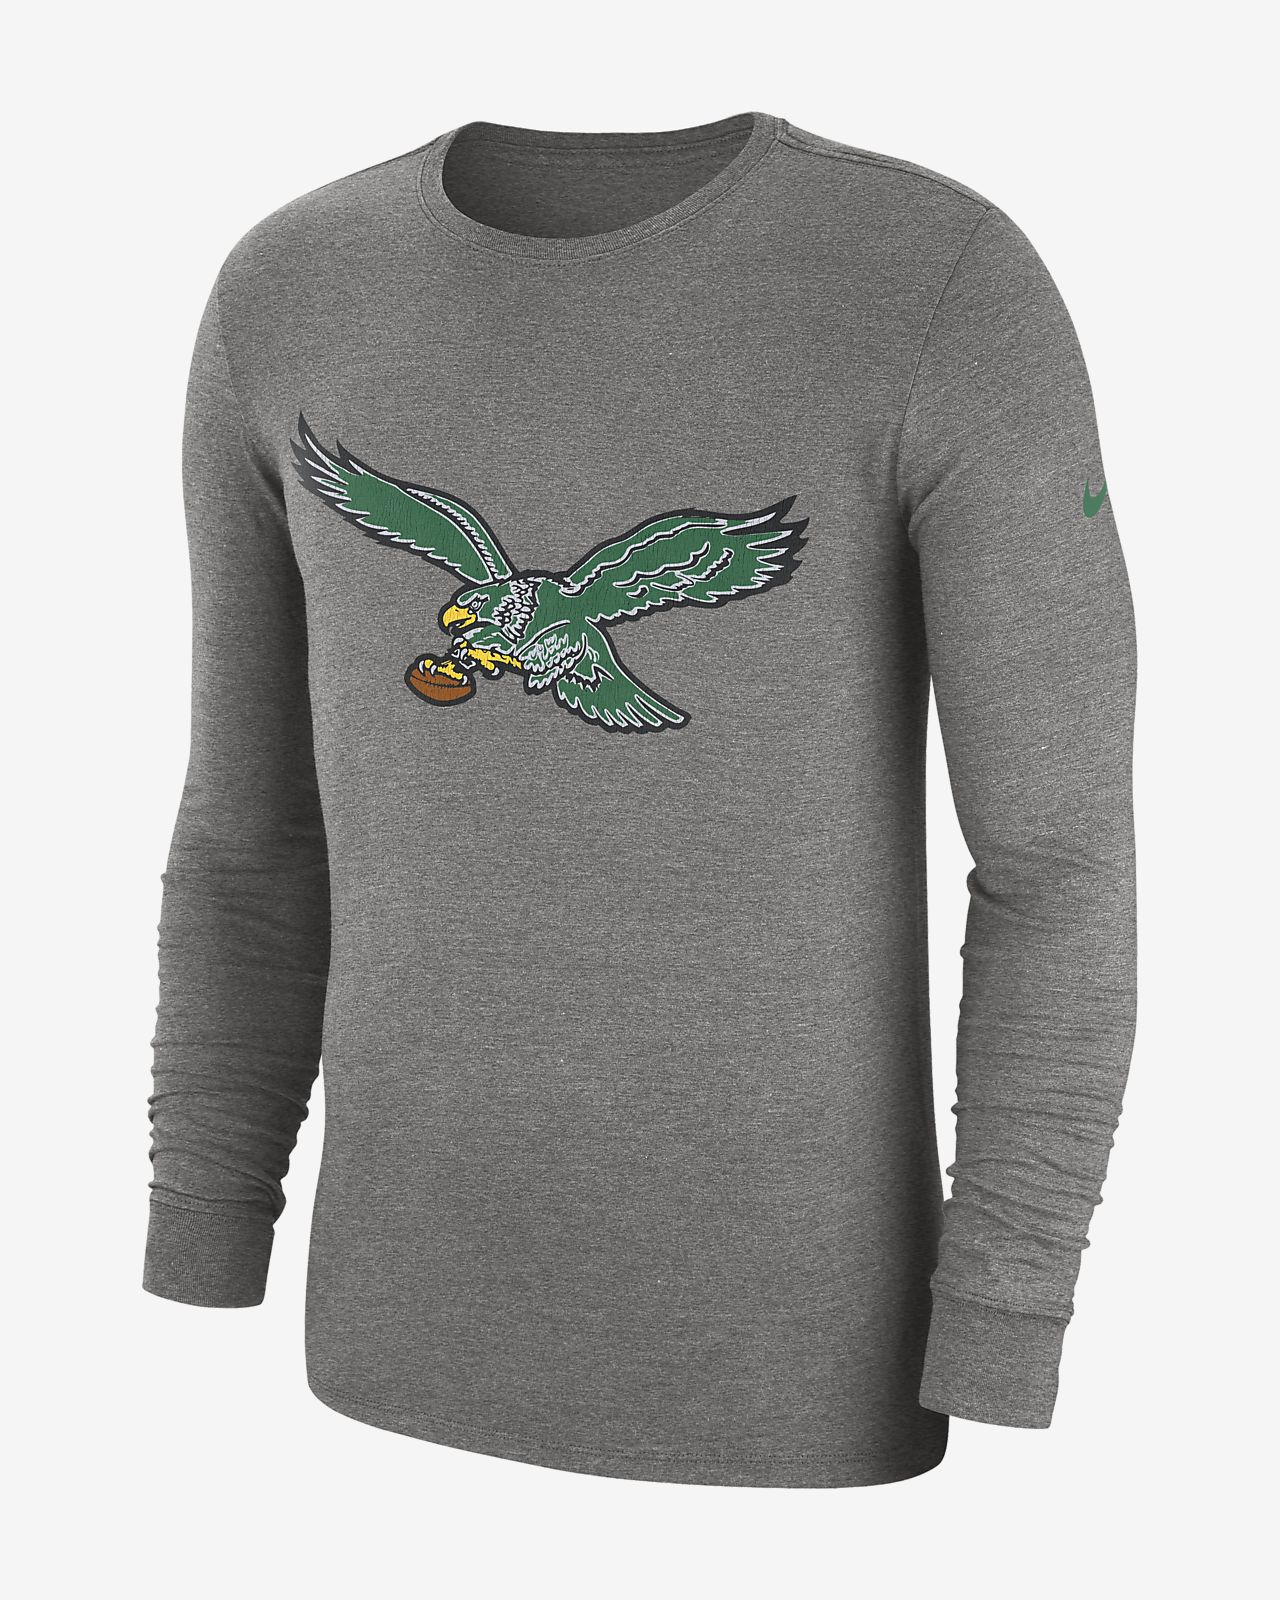 6d46a3ff7 Nike (NFL Eagles) Men s Tri-Blend Long Sleeve T-Shirt. Nike.com